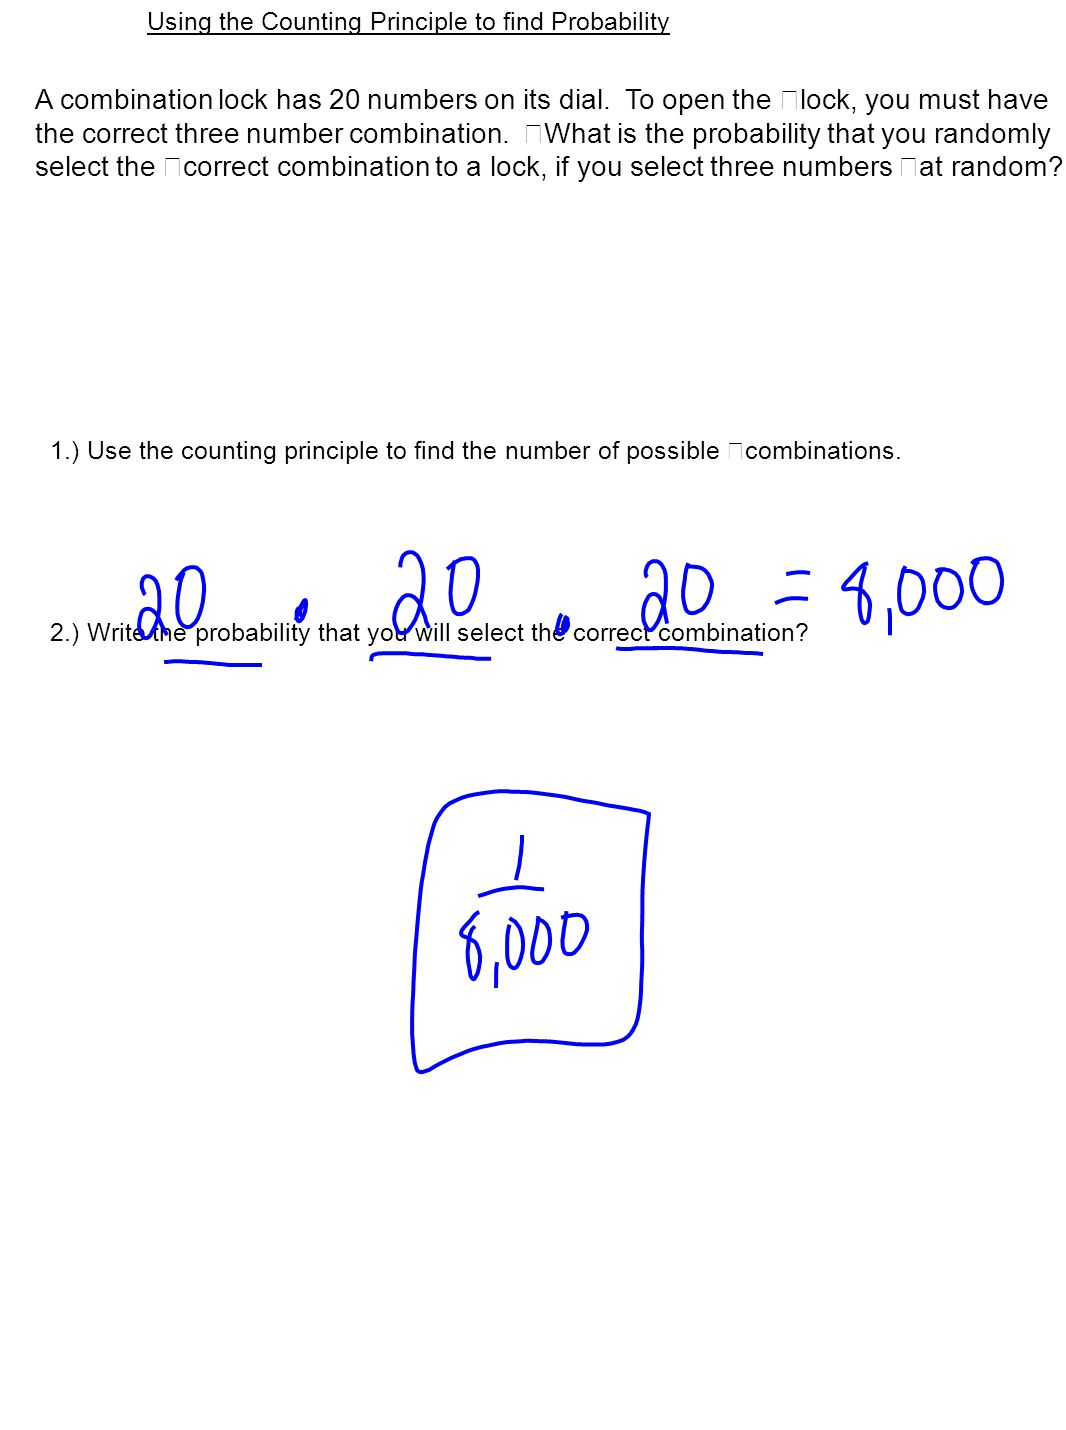 A B C D E F H G Use the multiplication principle to find the total number of possible outcomes.